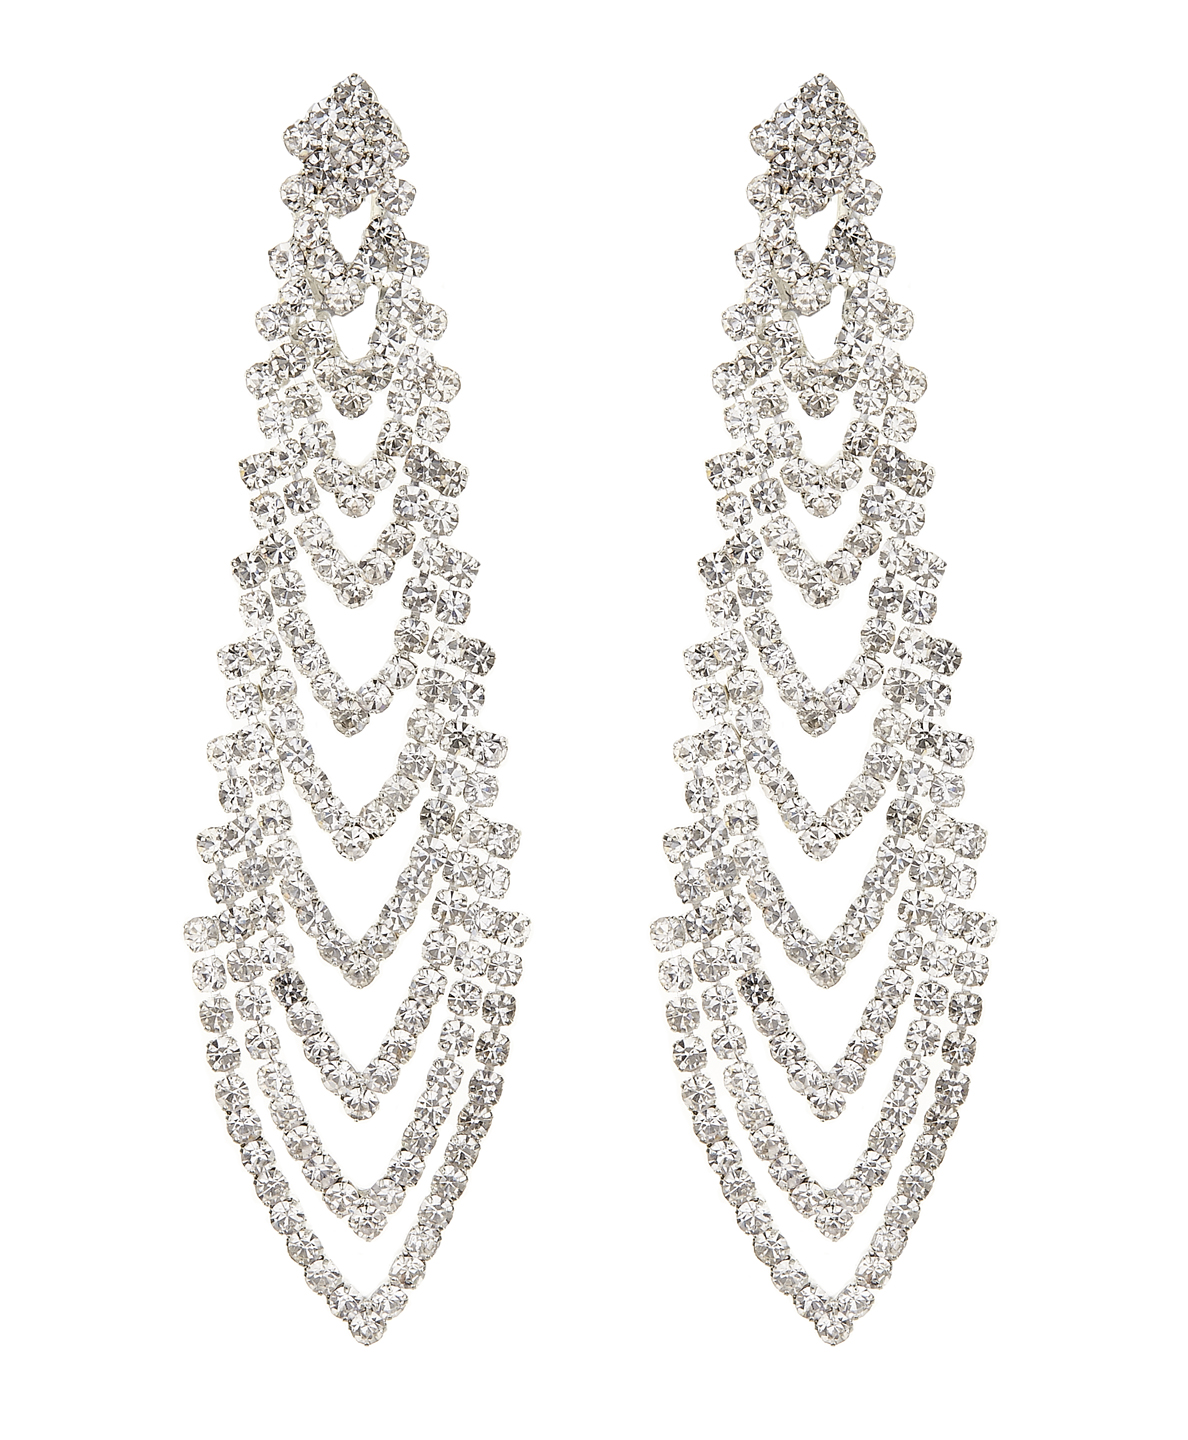 Calla S silver chandelier earring with clear crystals CLIP ON EARRINGS